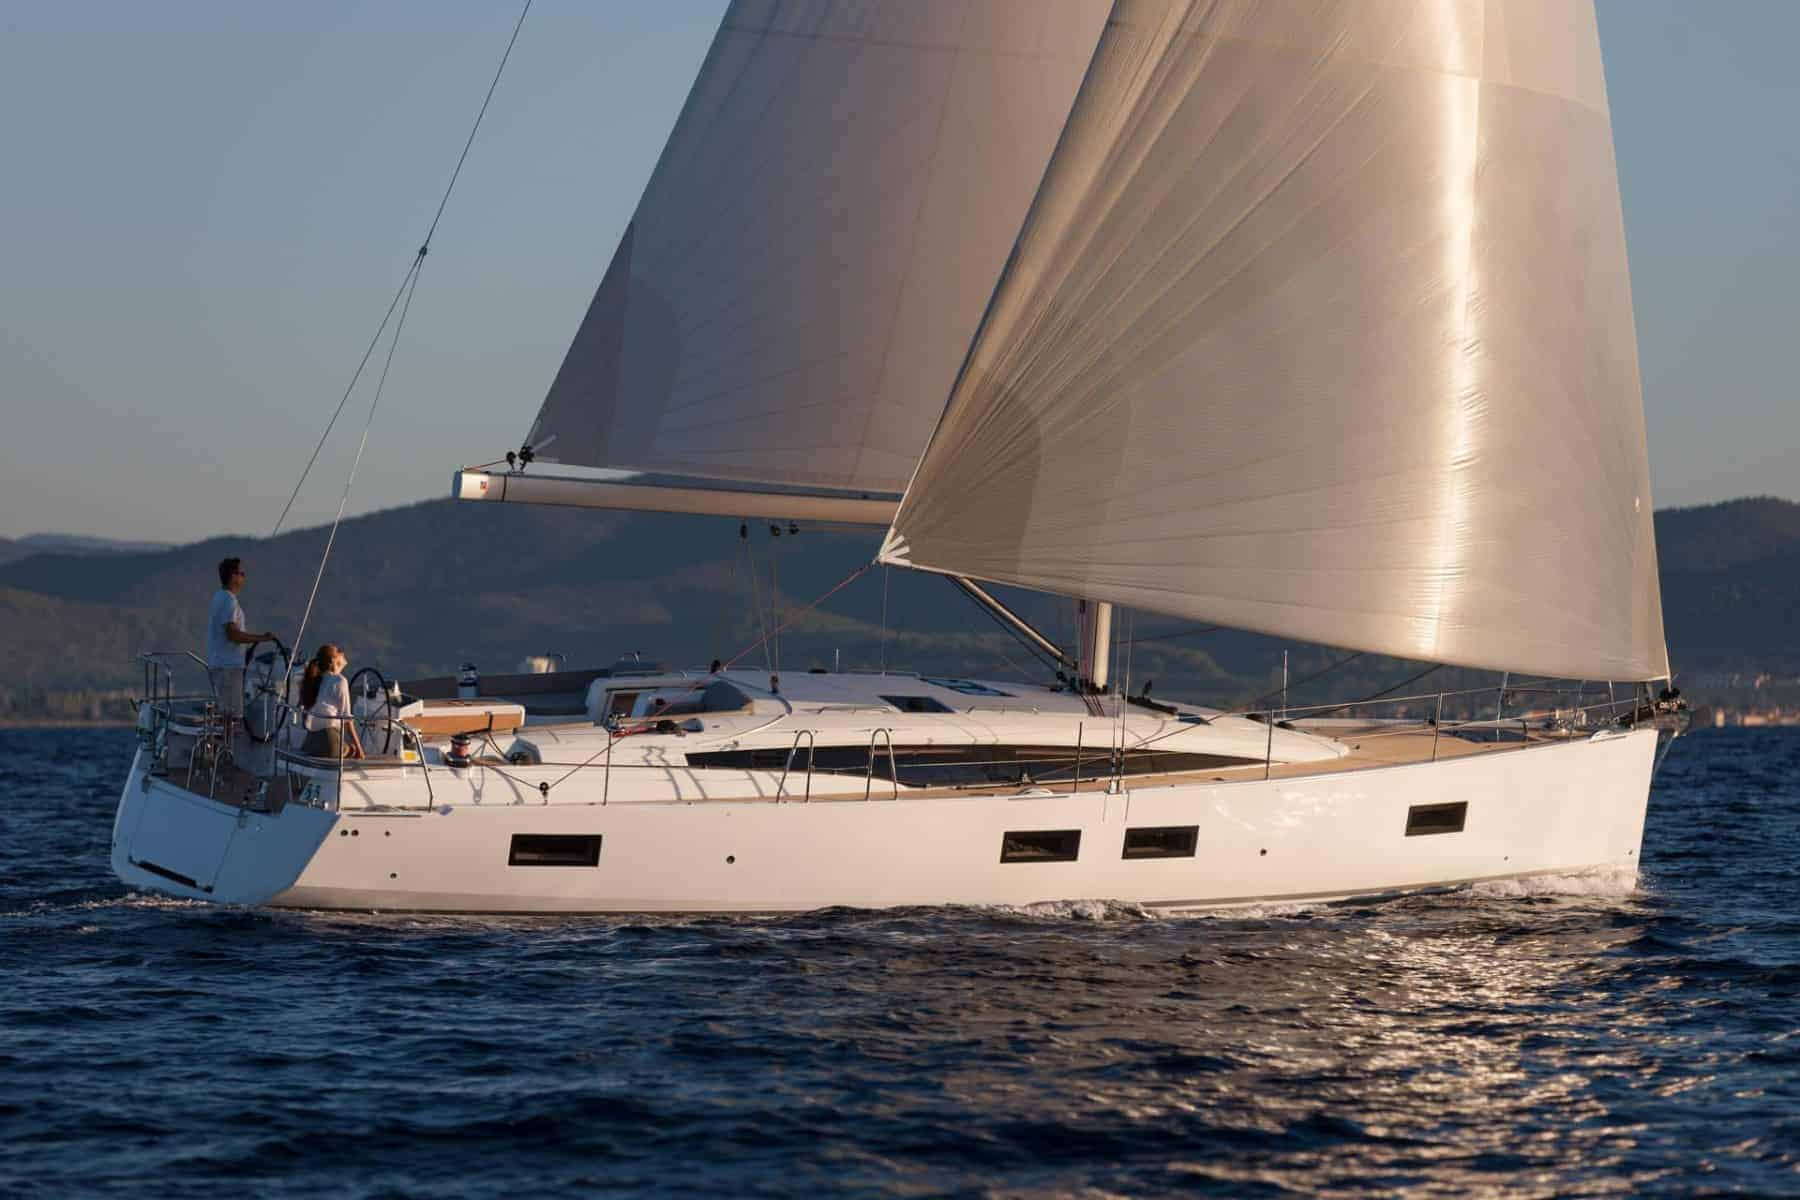 Jeanneau-51-exterior-15-charter-ownership-yacht